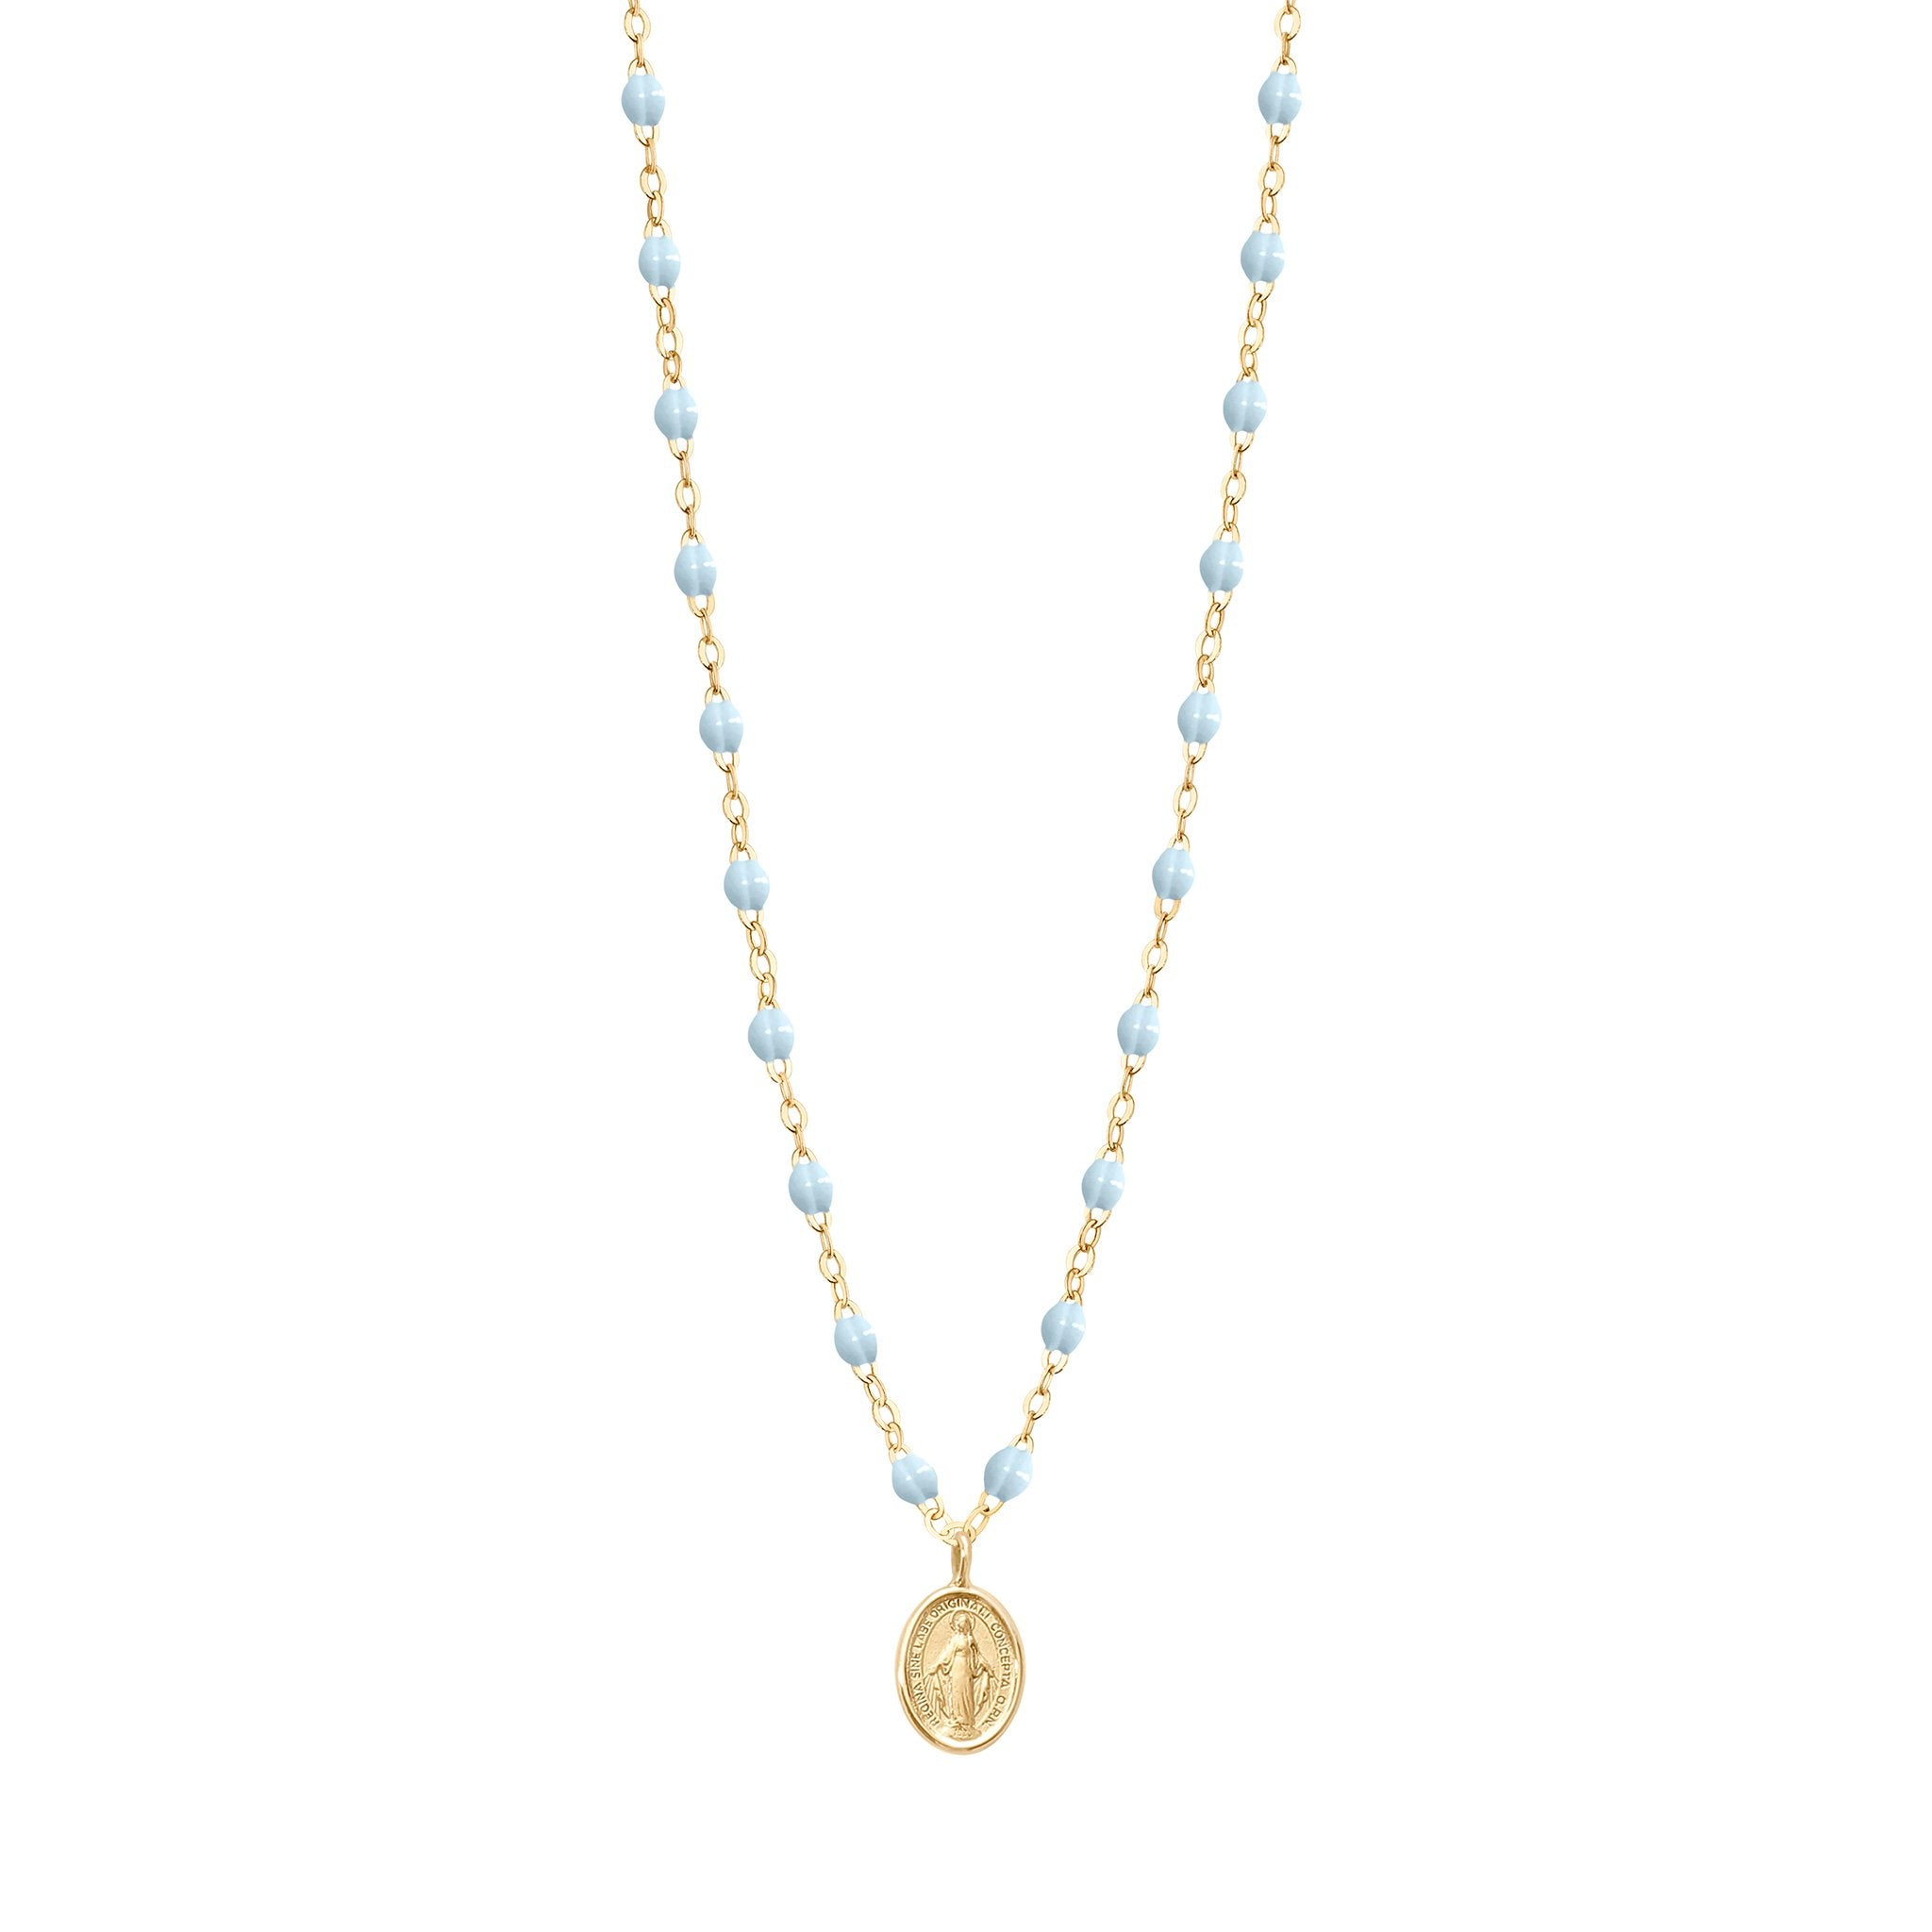 Gigi Clozeau - Madone Charm Classic Gigi Baby Blue necklace, Yellow Gold, 16.5